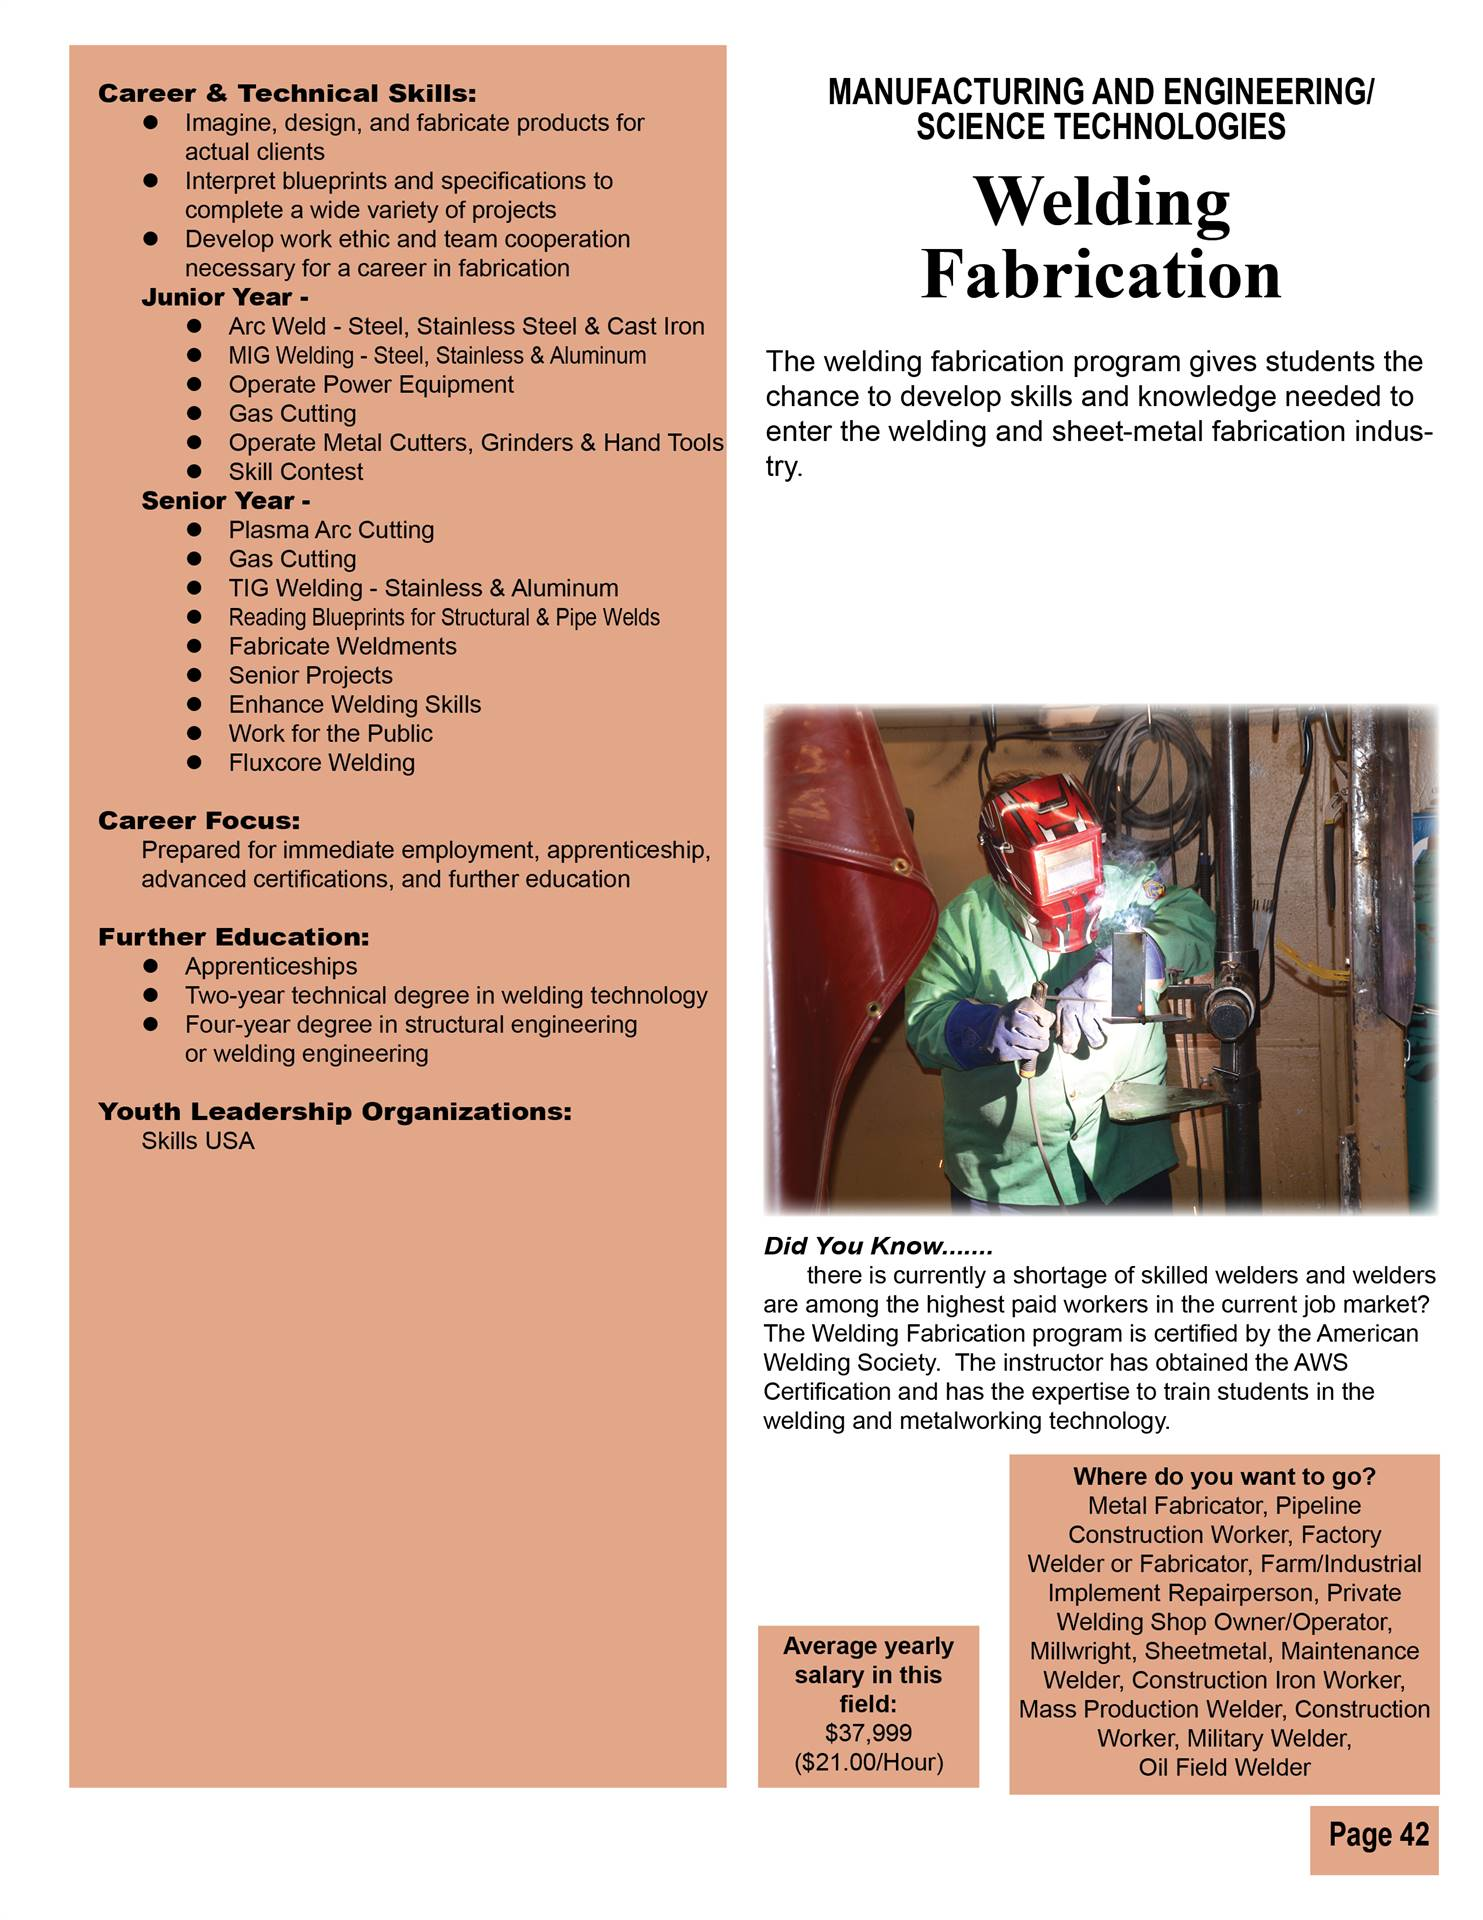 Welding Fabrication